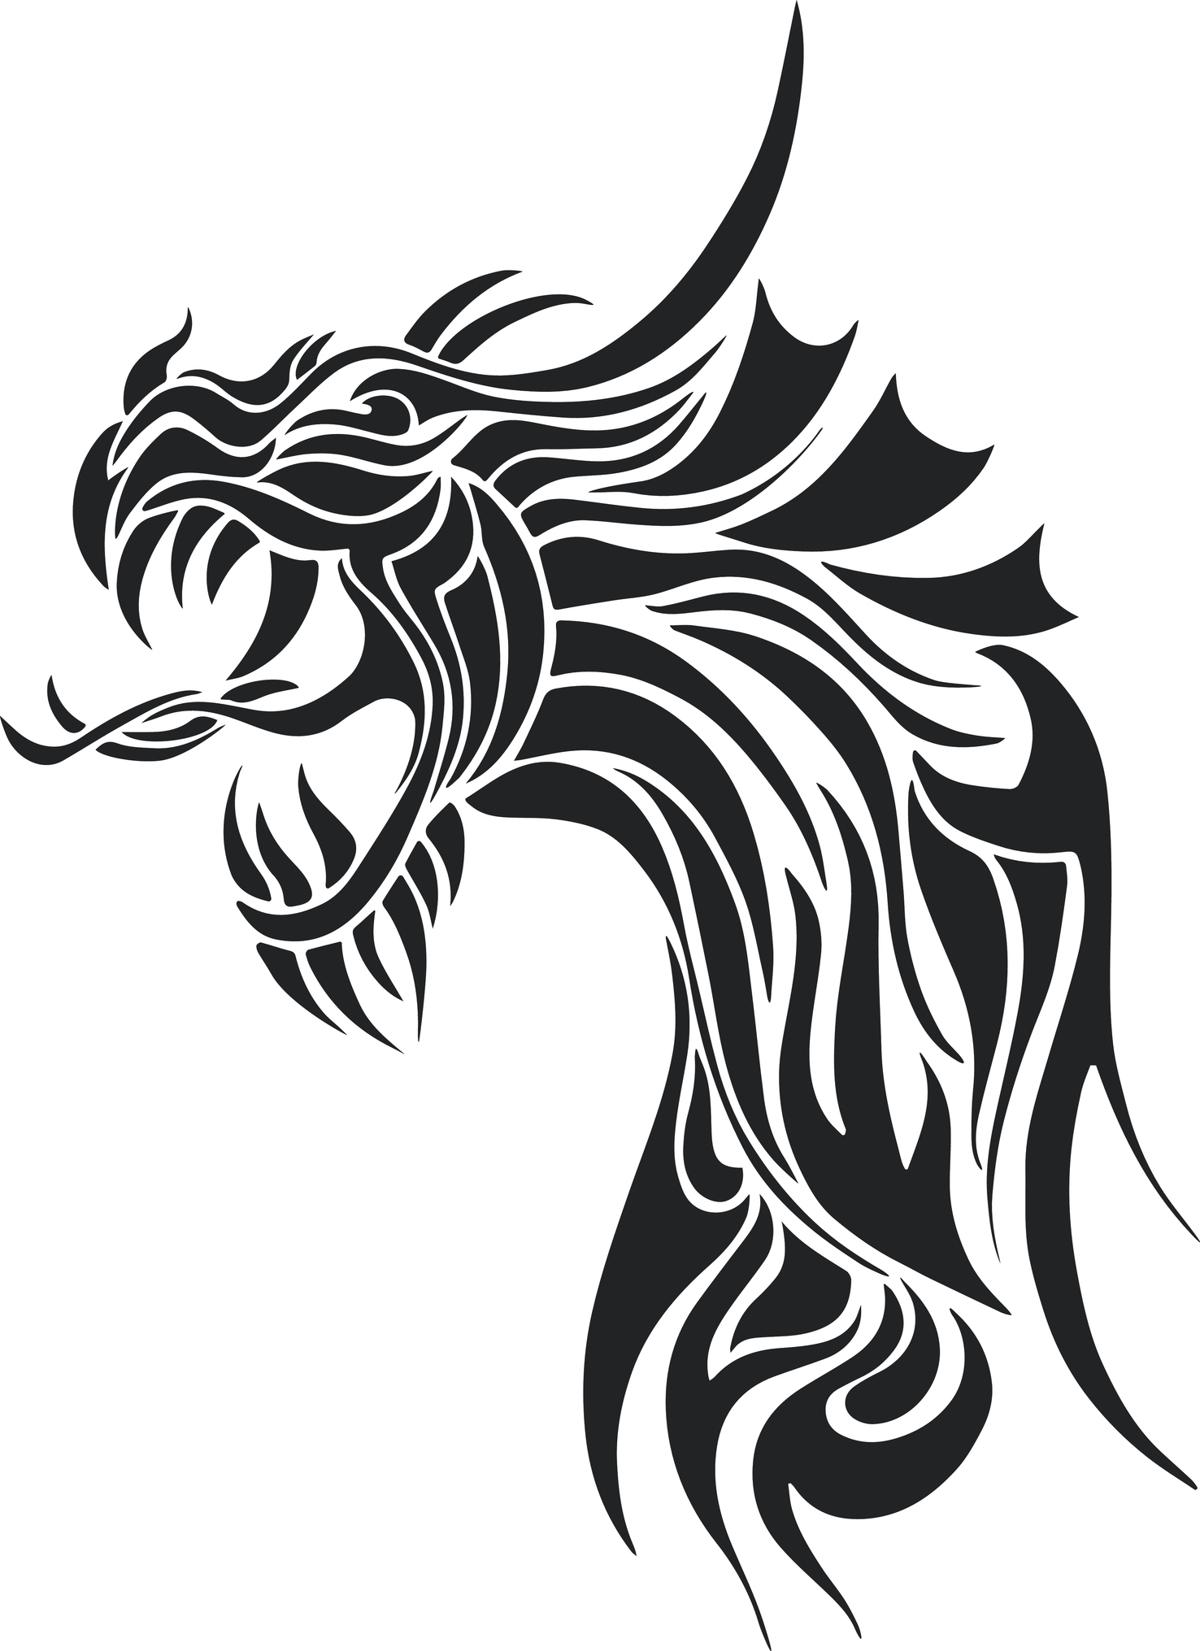 Dragon Silhouette Tattoos